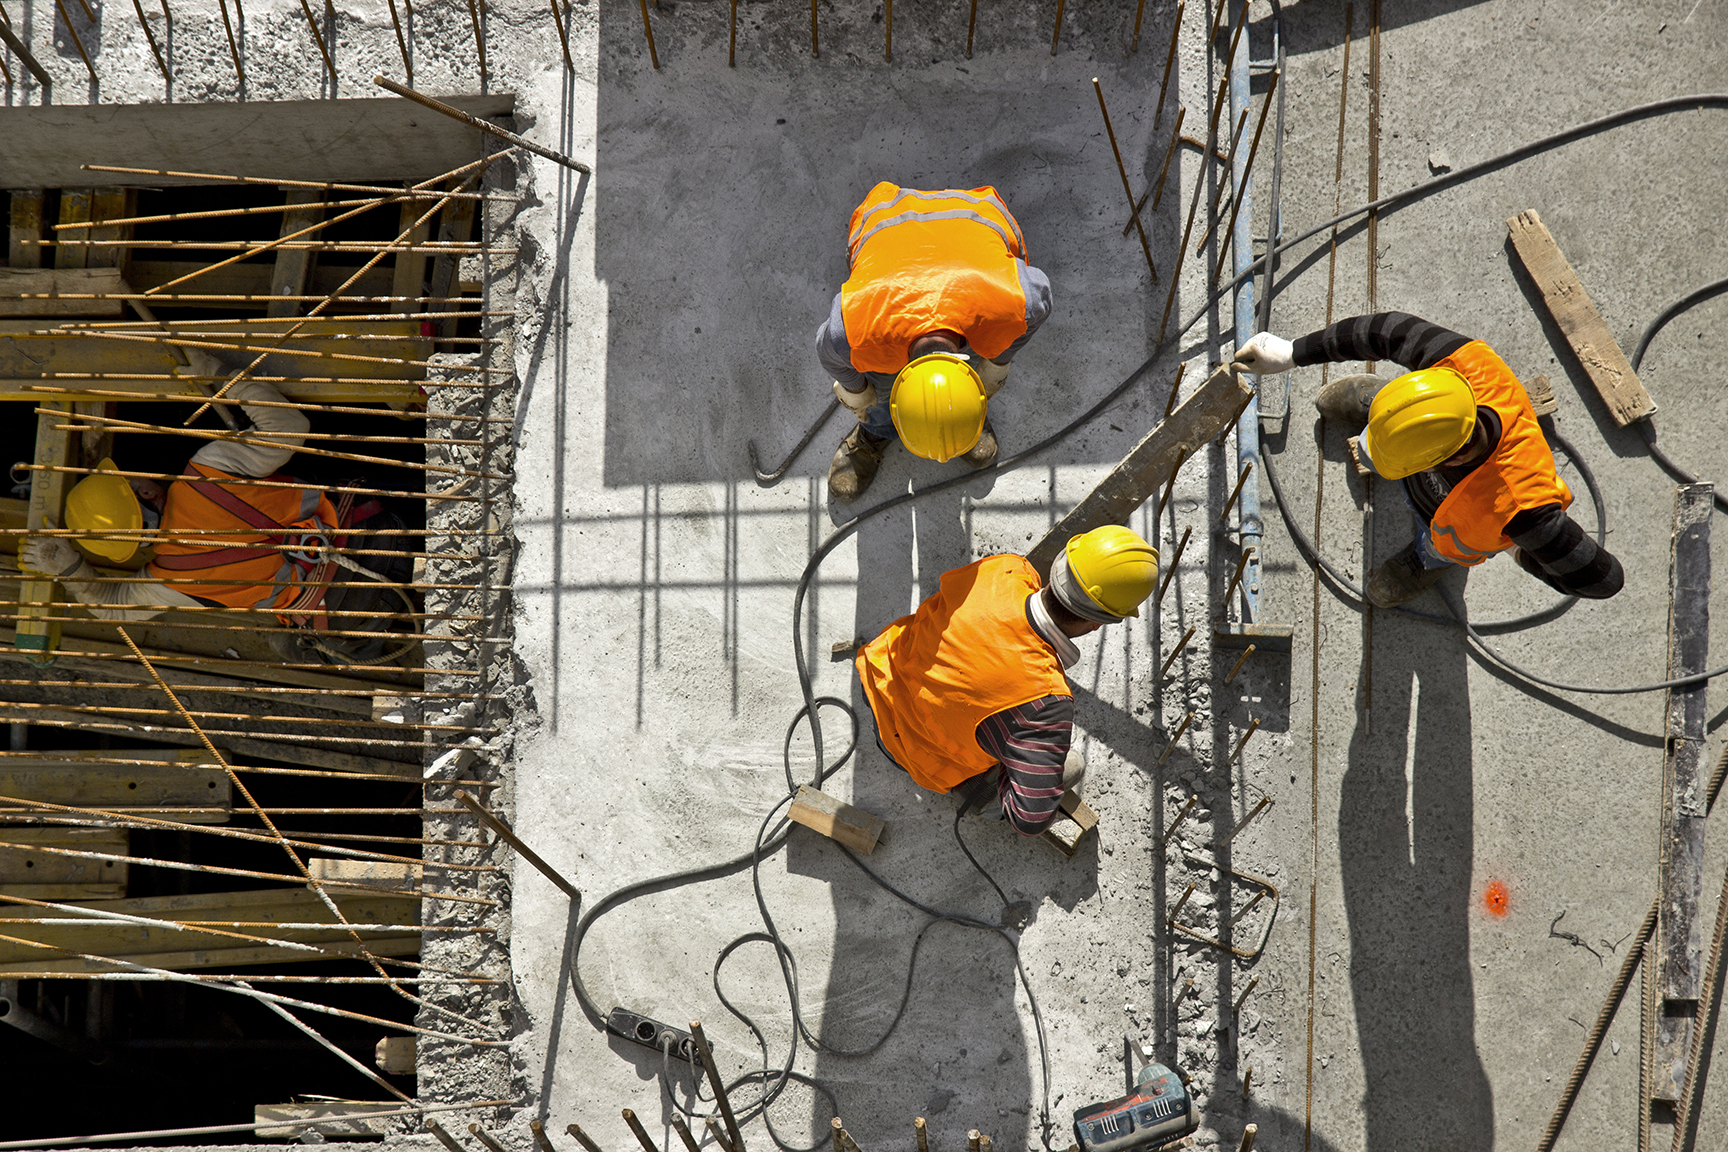 Construction site workers